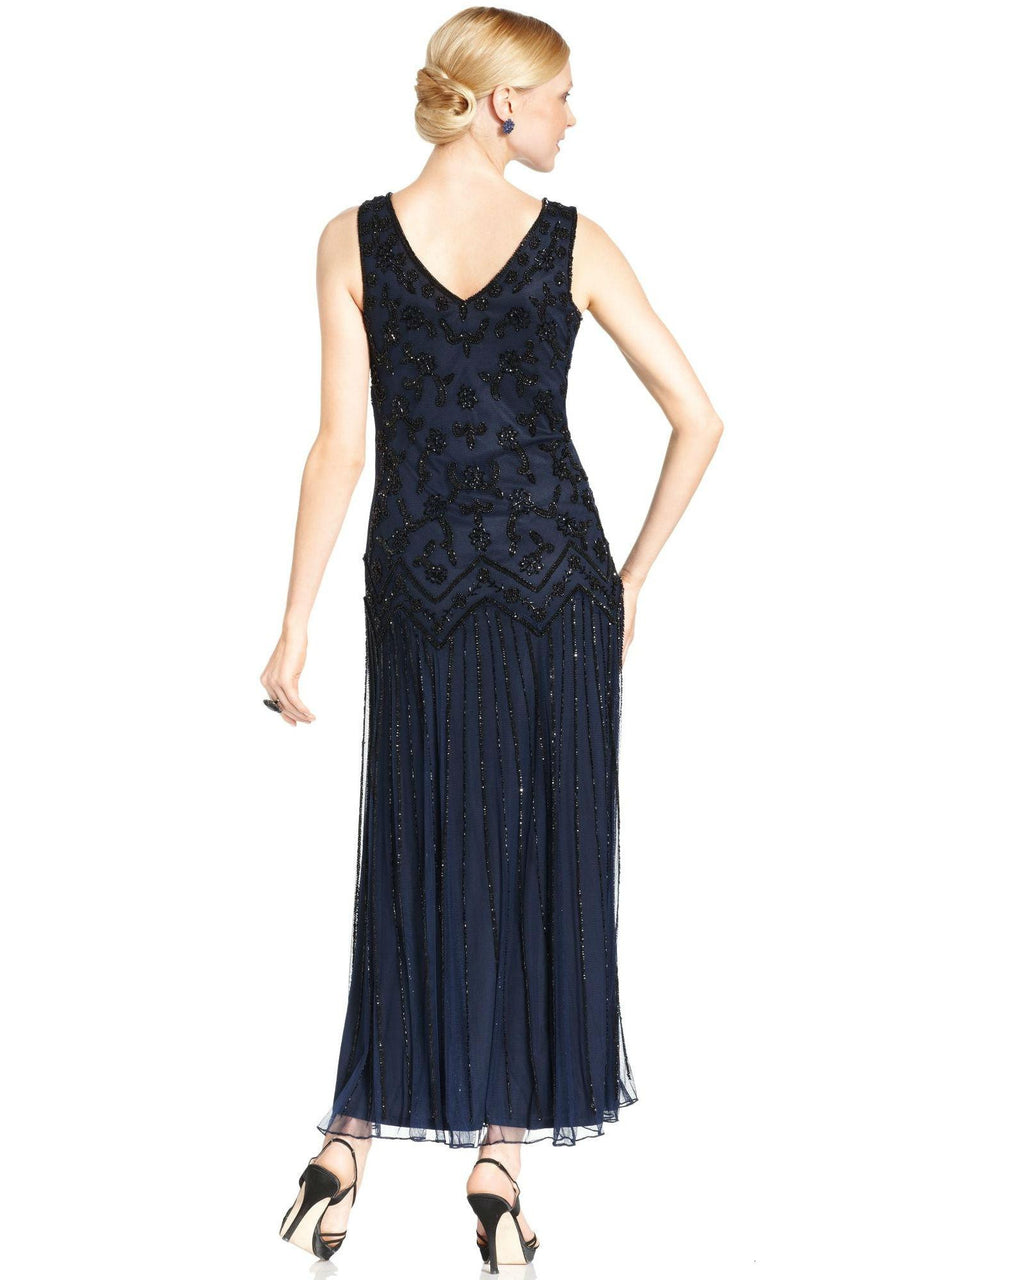 Pisarro Nights Sleeveless Beaded Sequin Gown-PISARRO NIGHTS-Fashionbarn shop